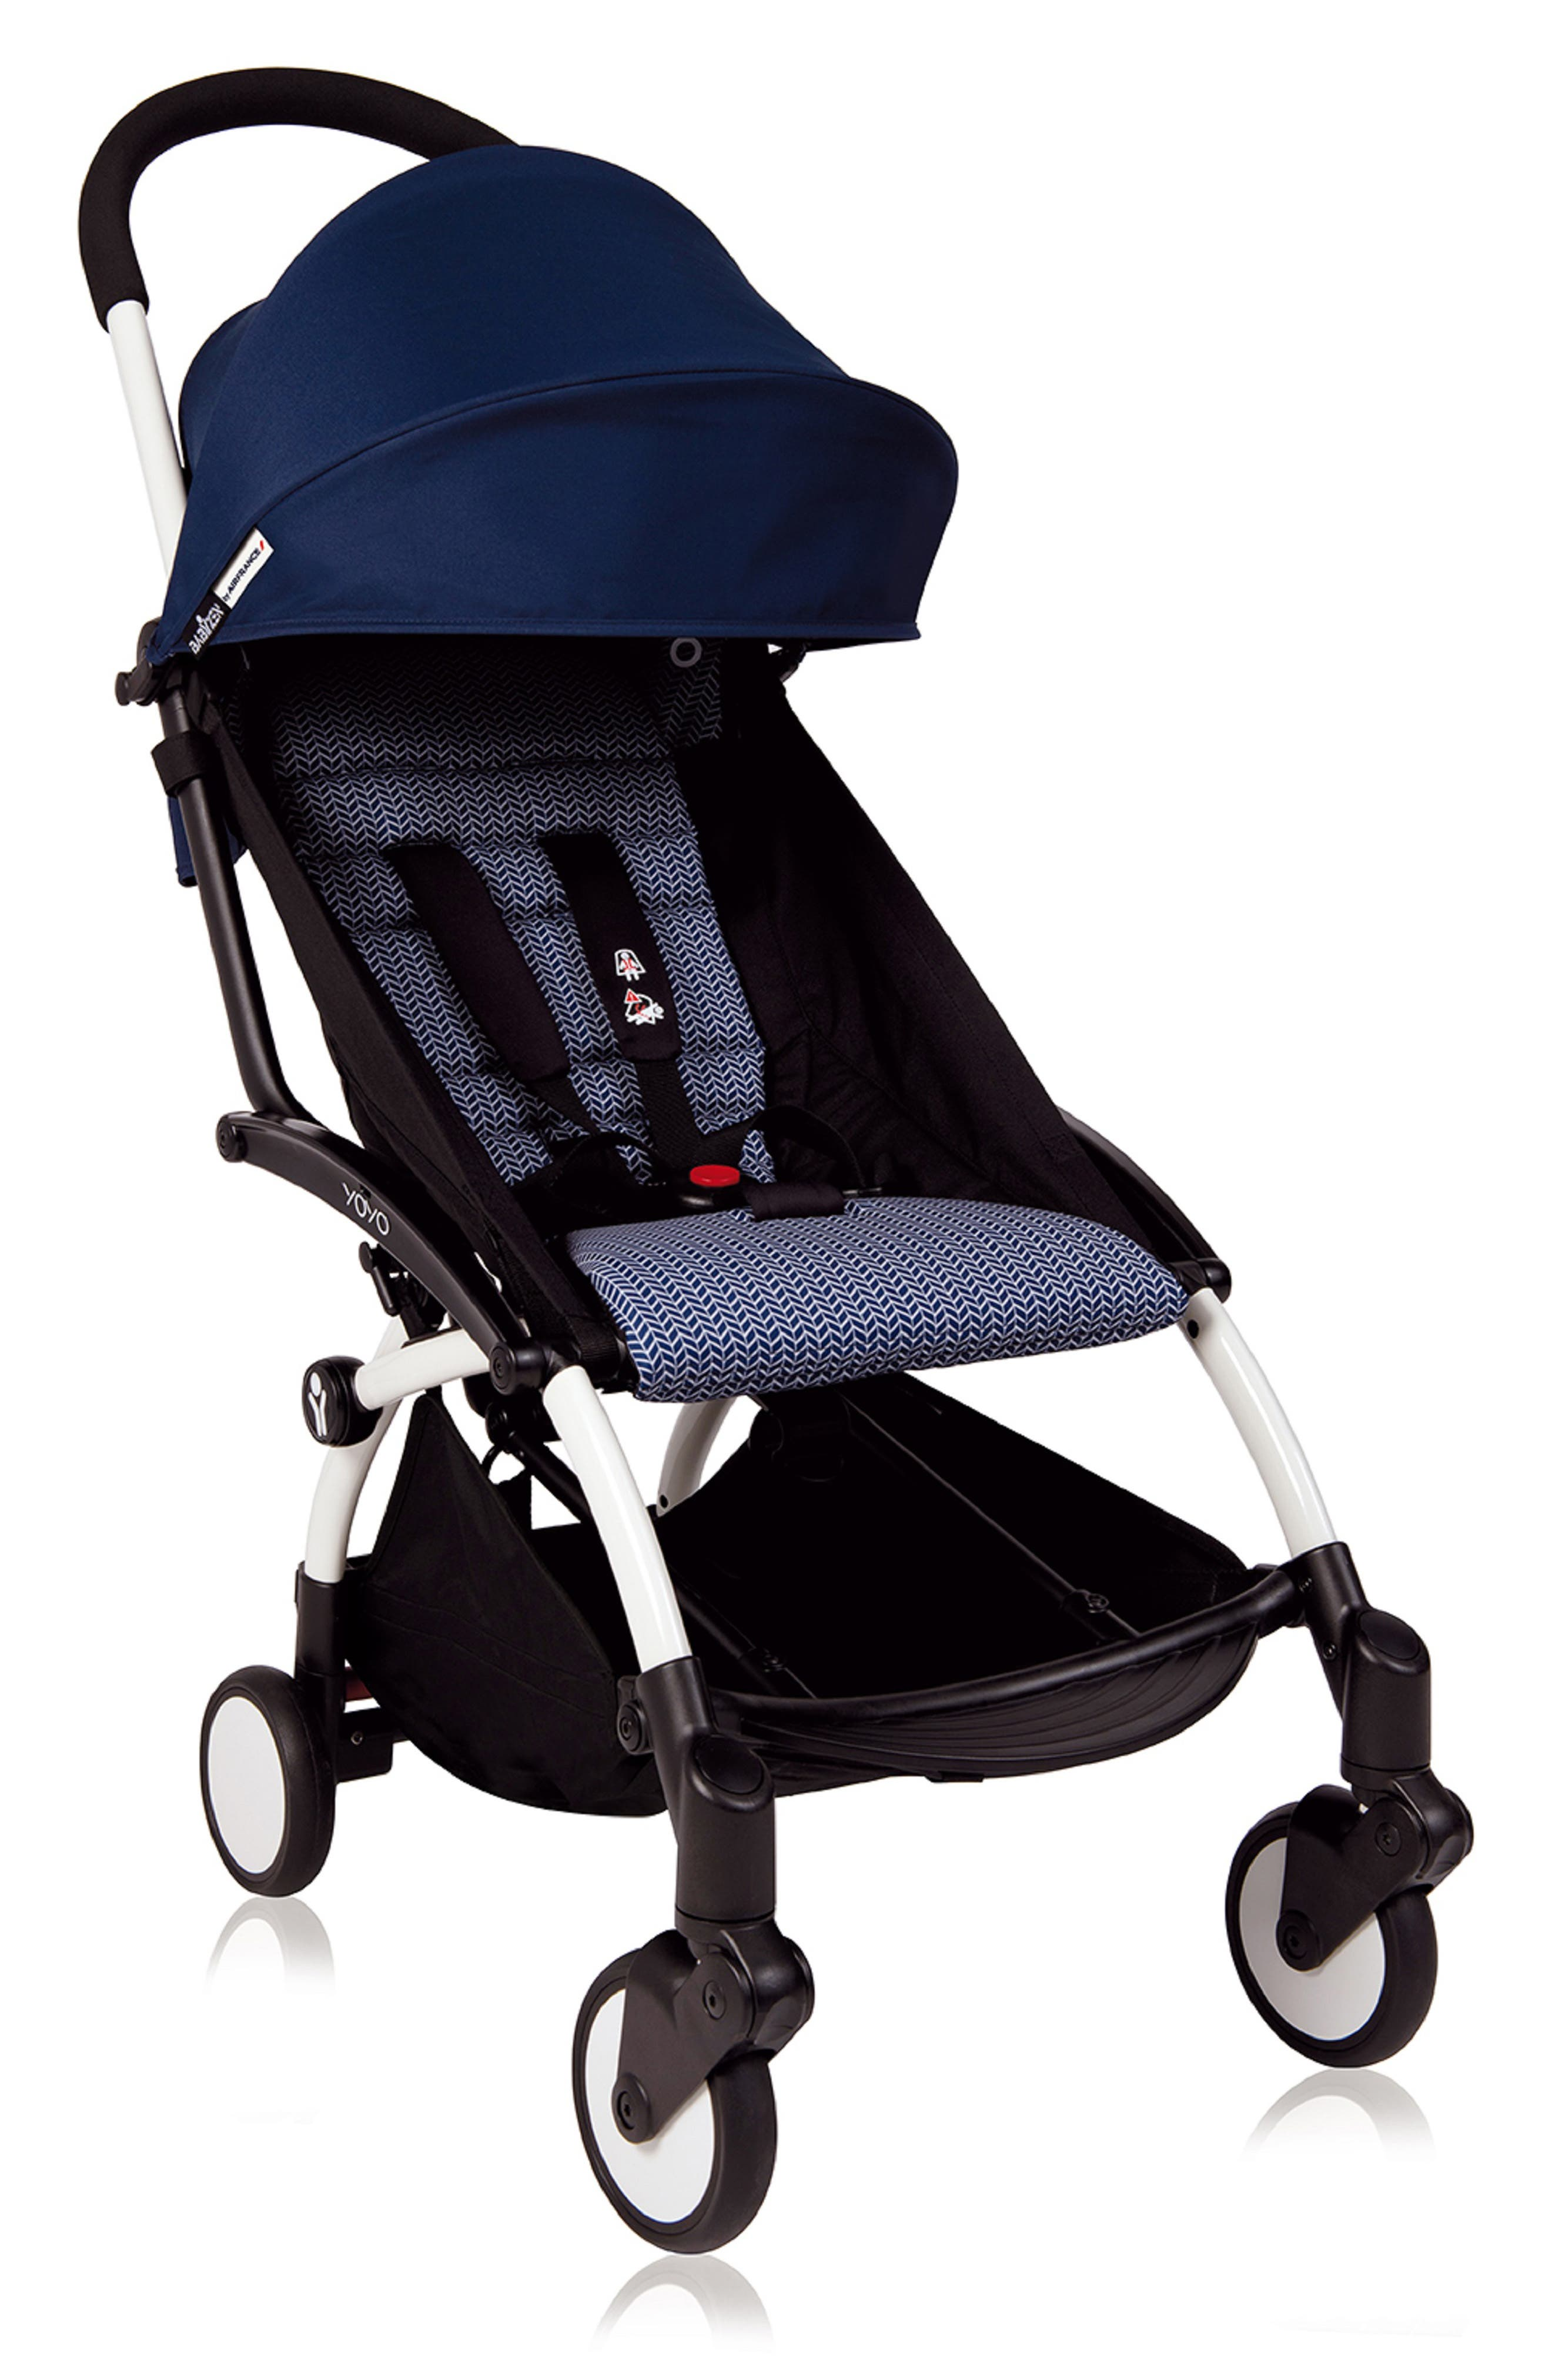 YOYO+ Stroller Frame,                         Main,                         color, White/ Air France Navy